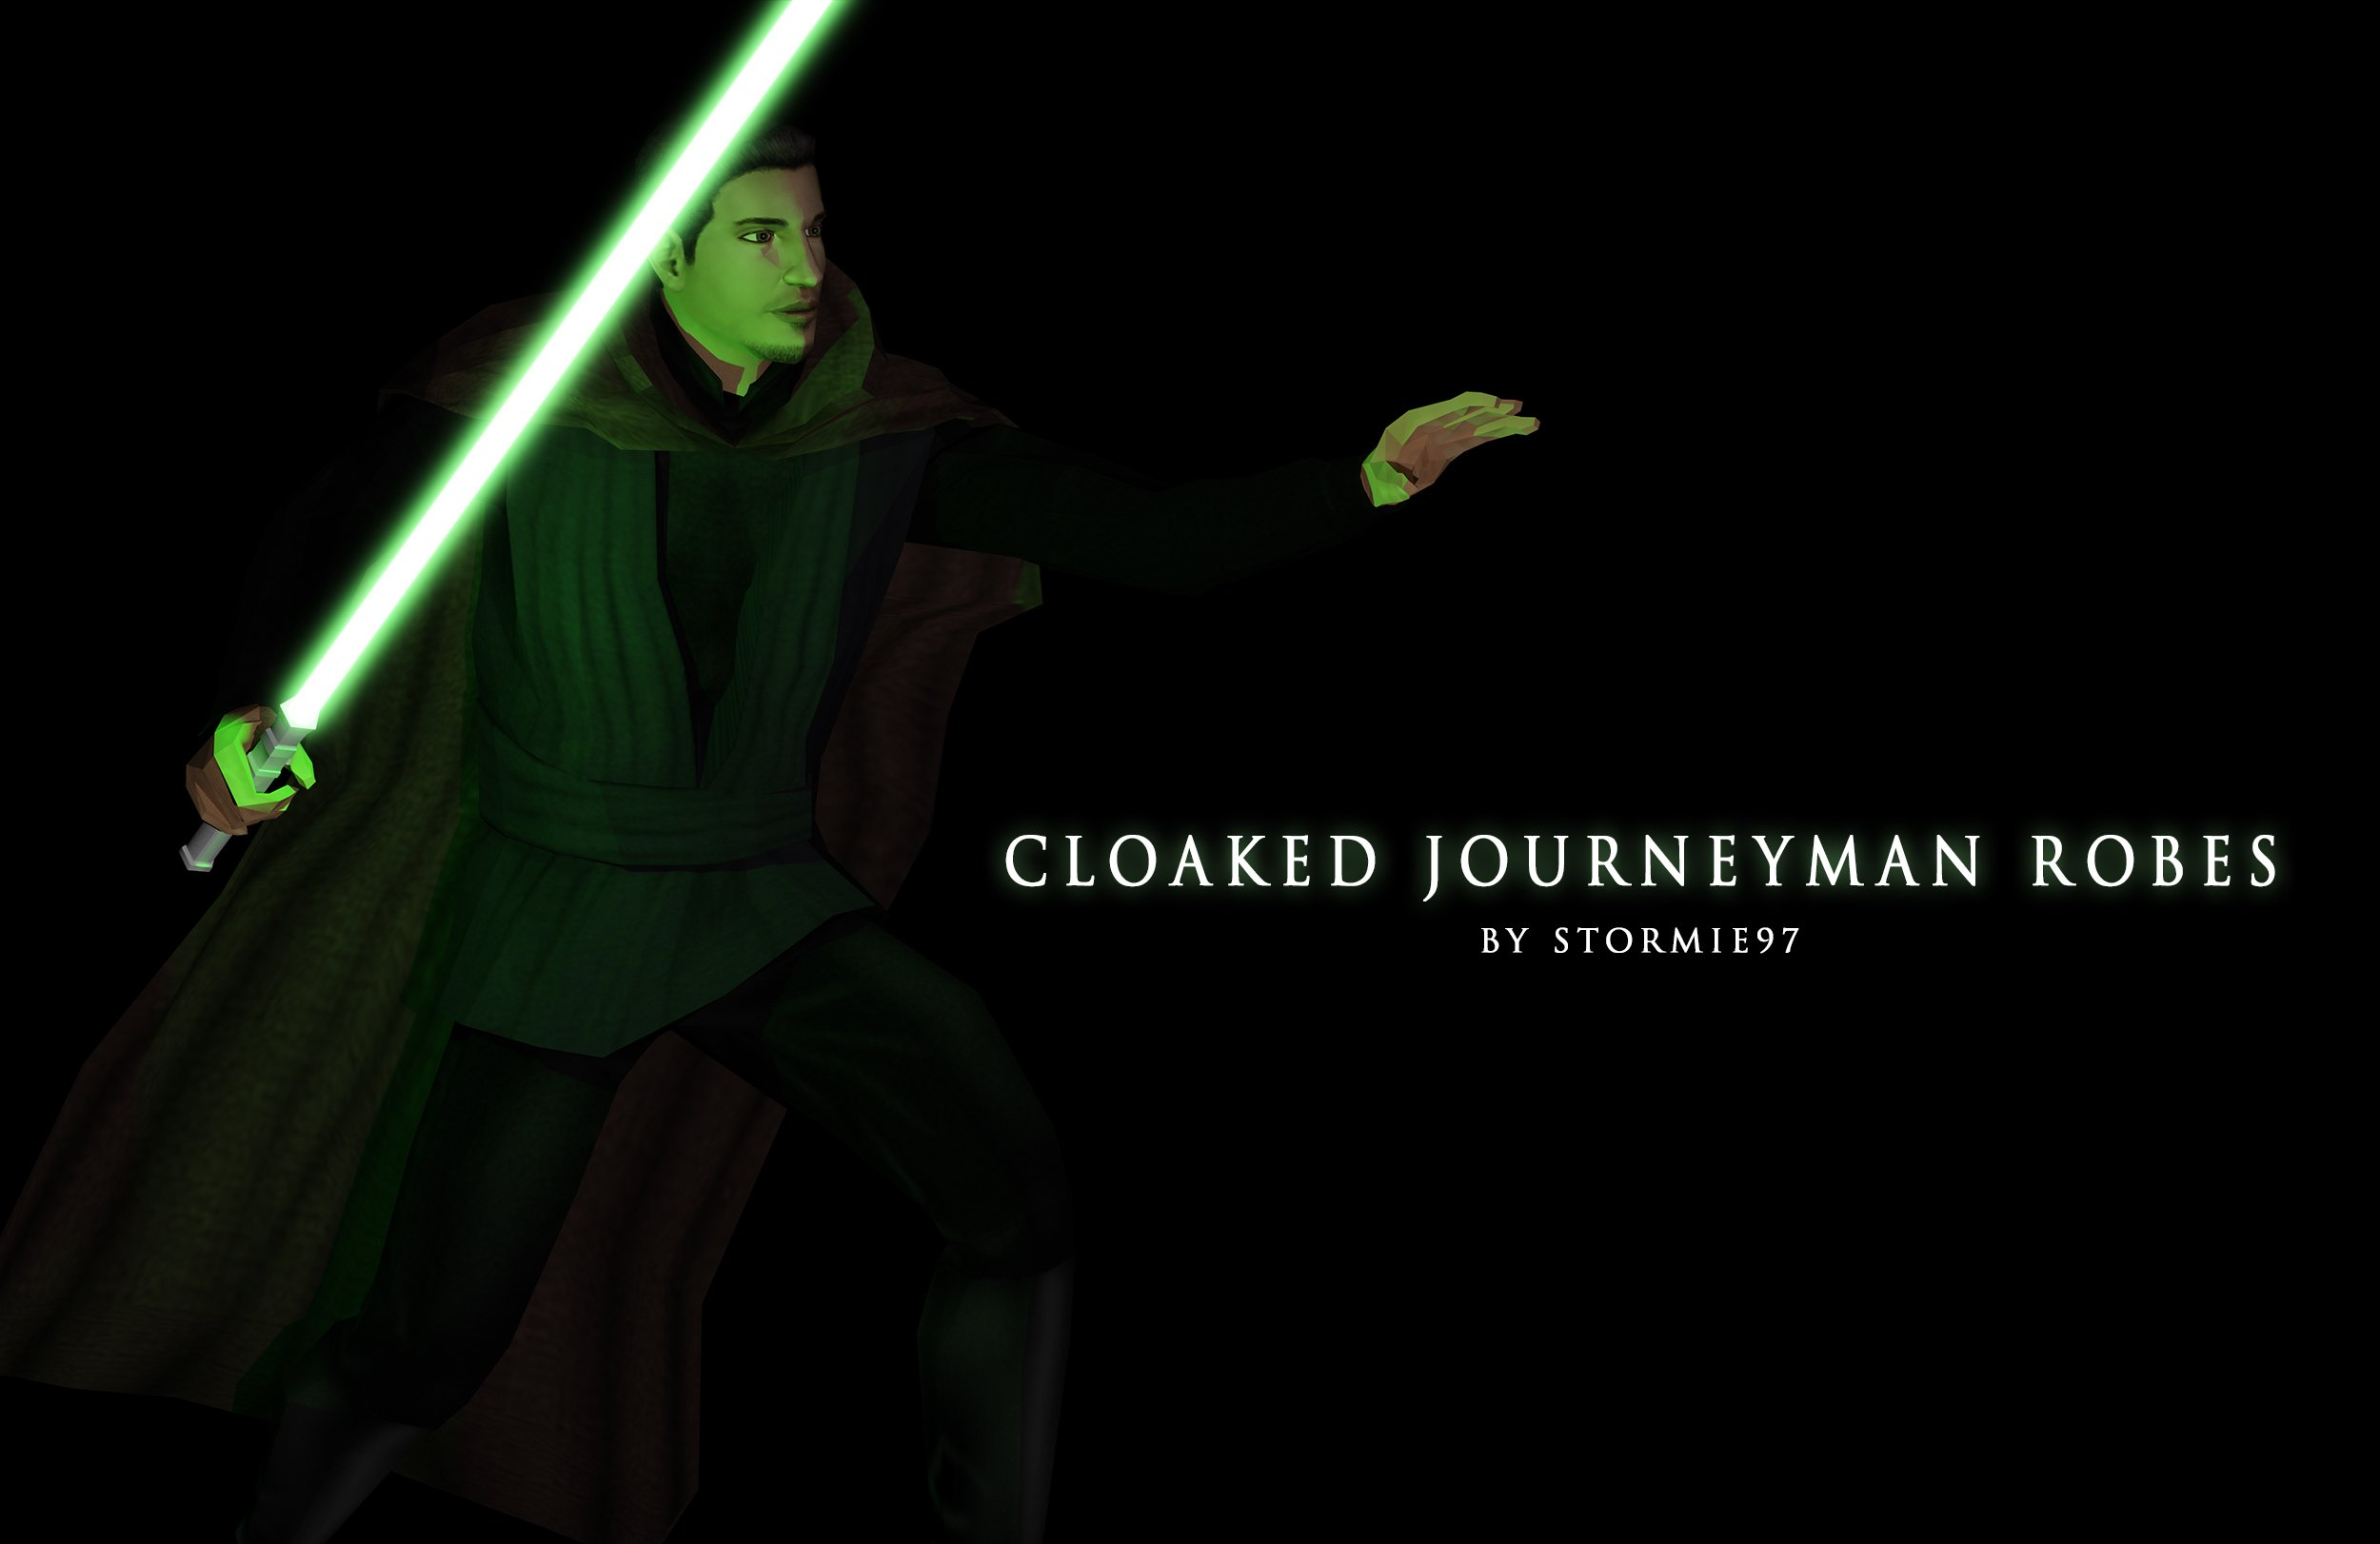 Cloaked Journeyman Robes